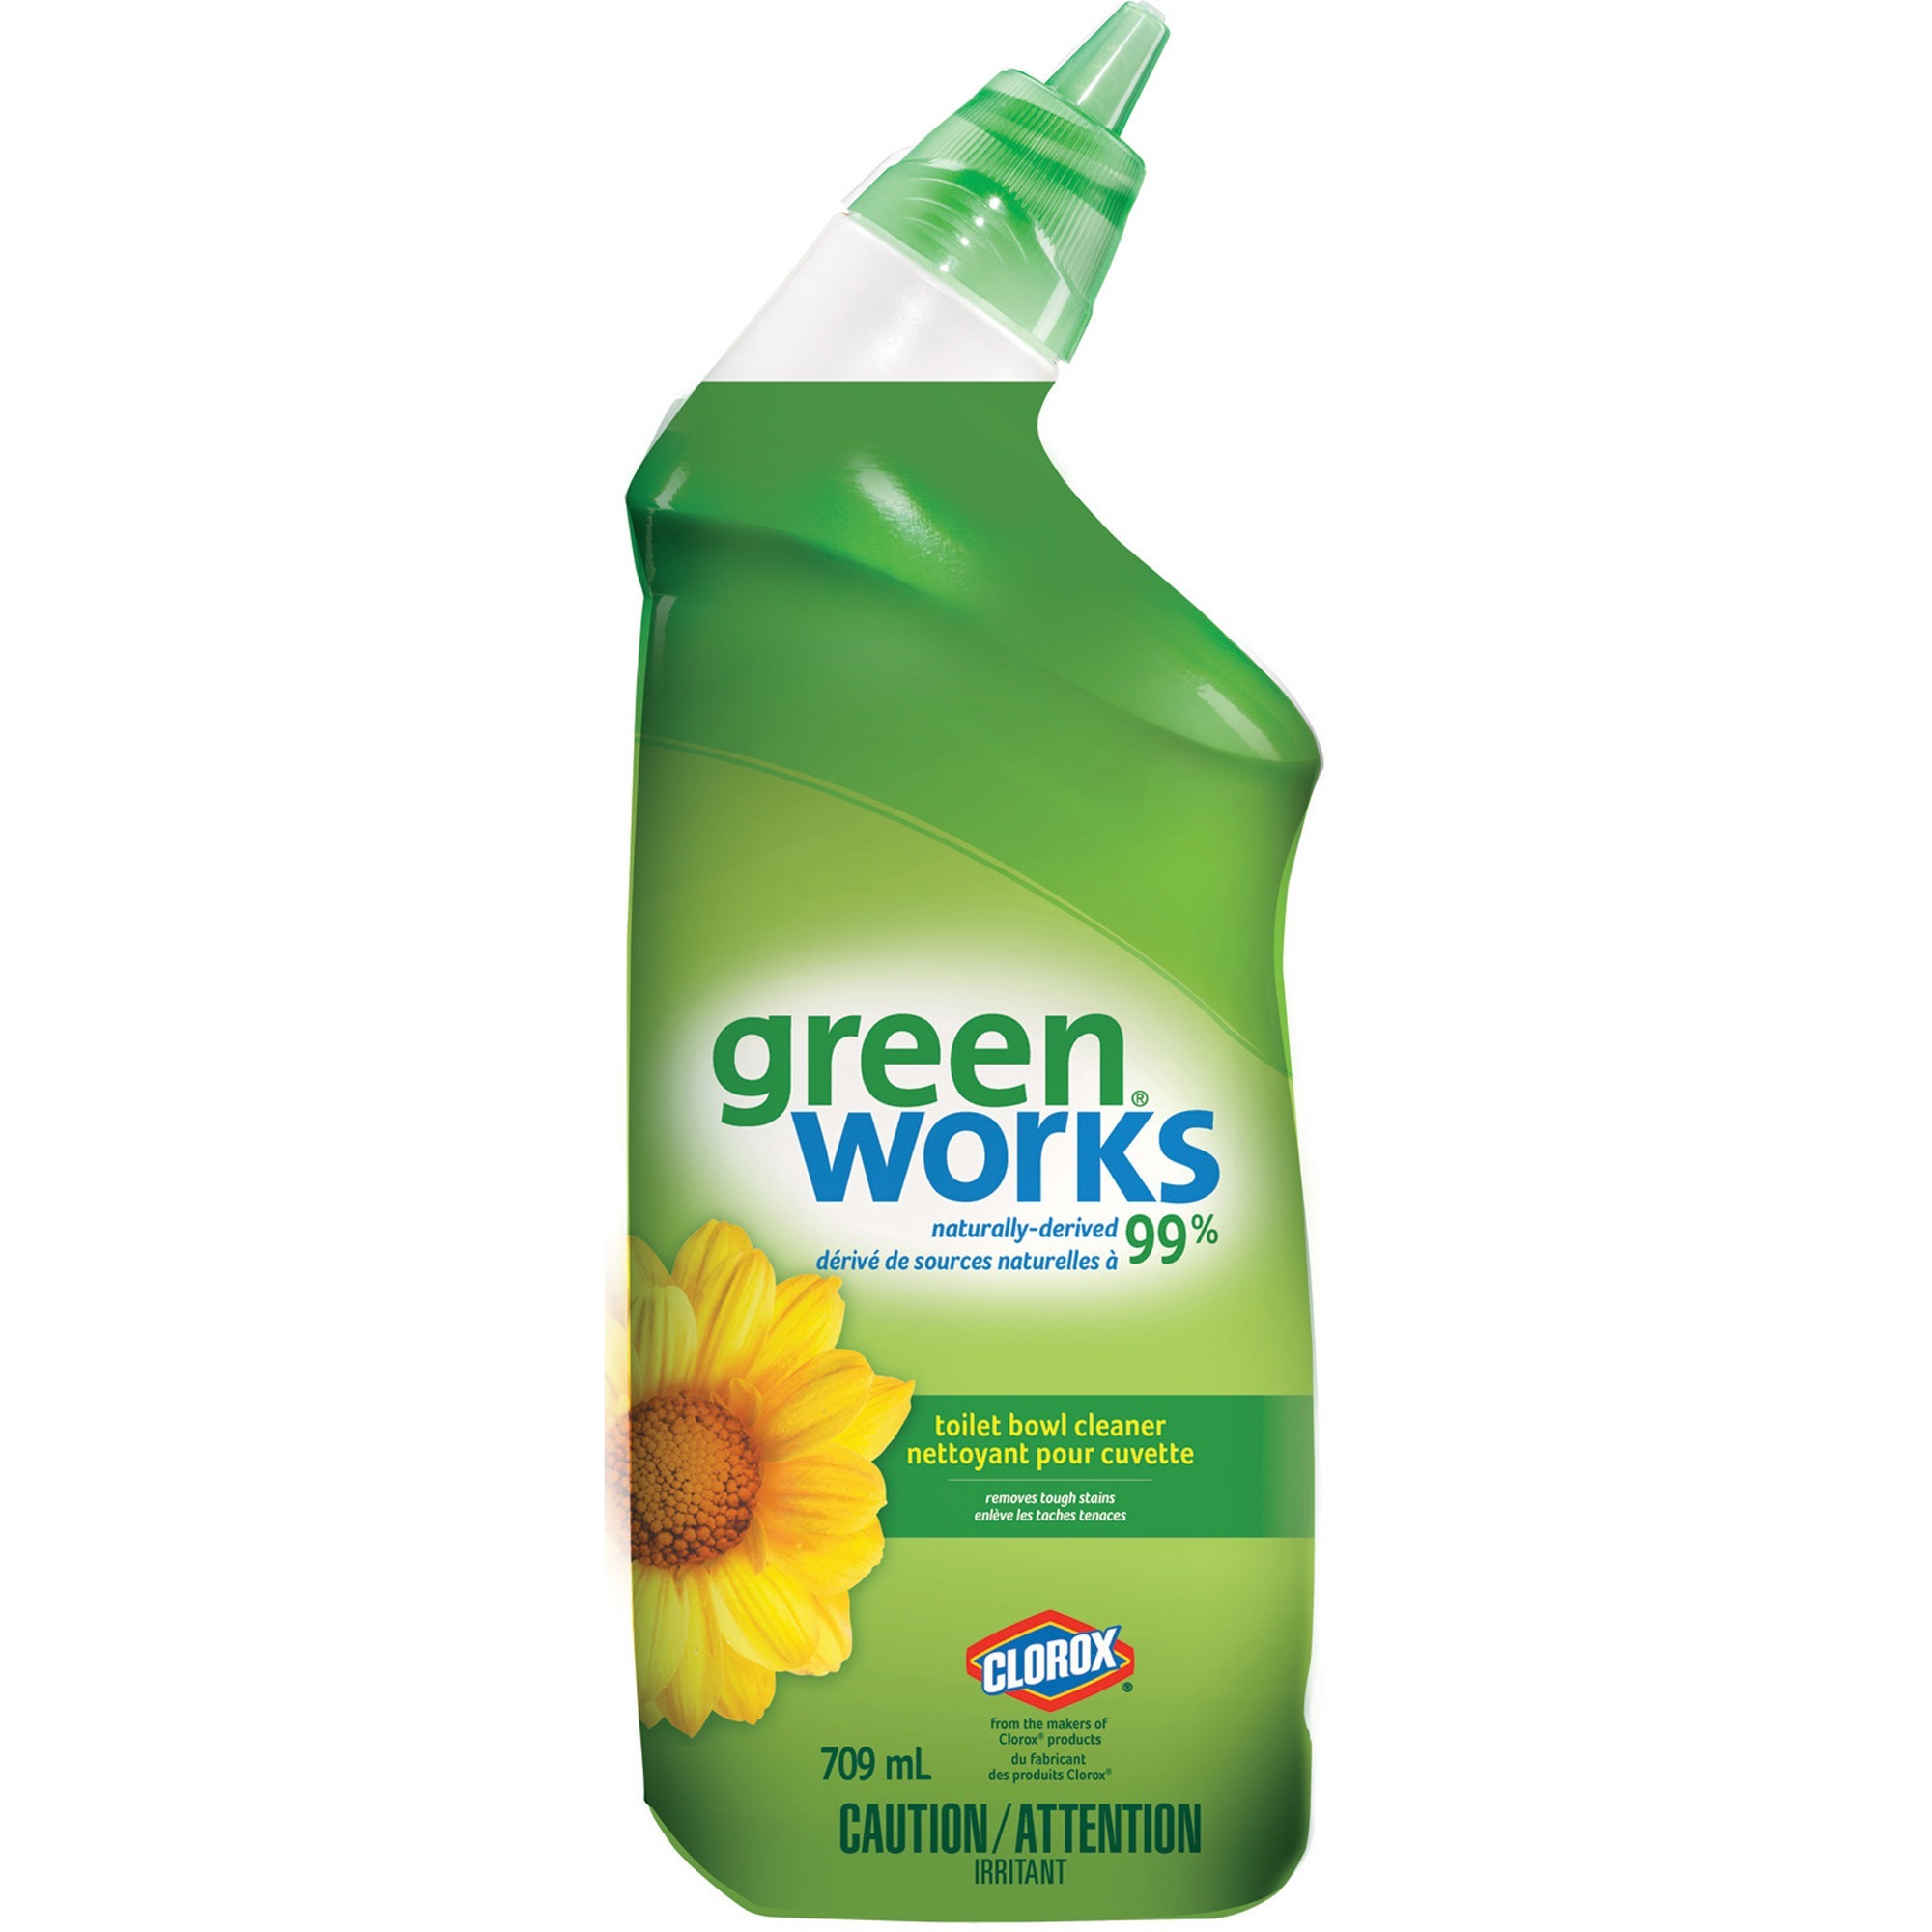 Green Works Natural Toilet Bowl Cleaner Madill The